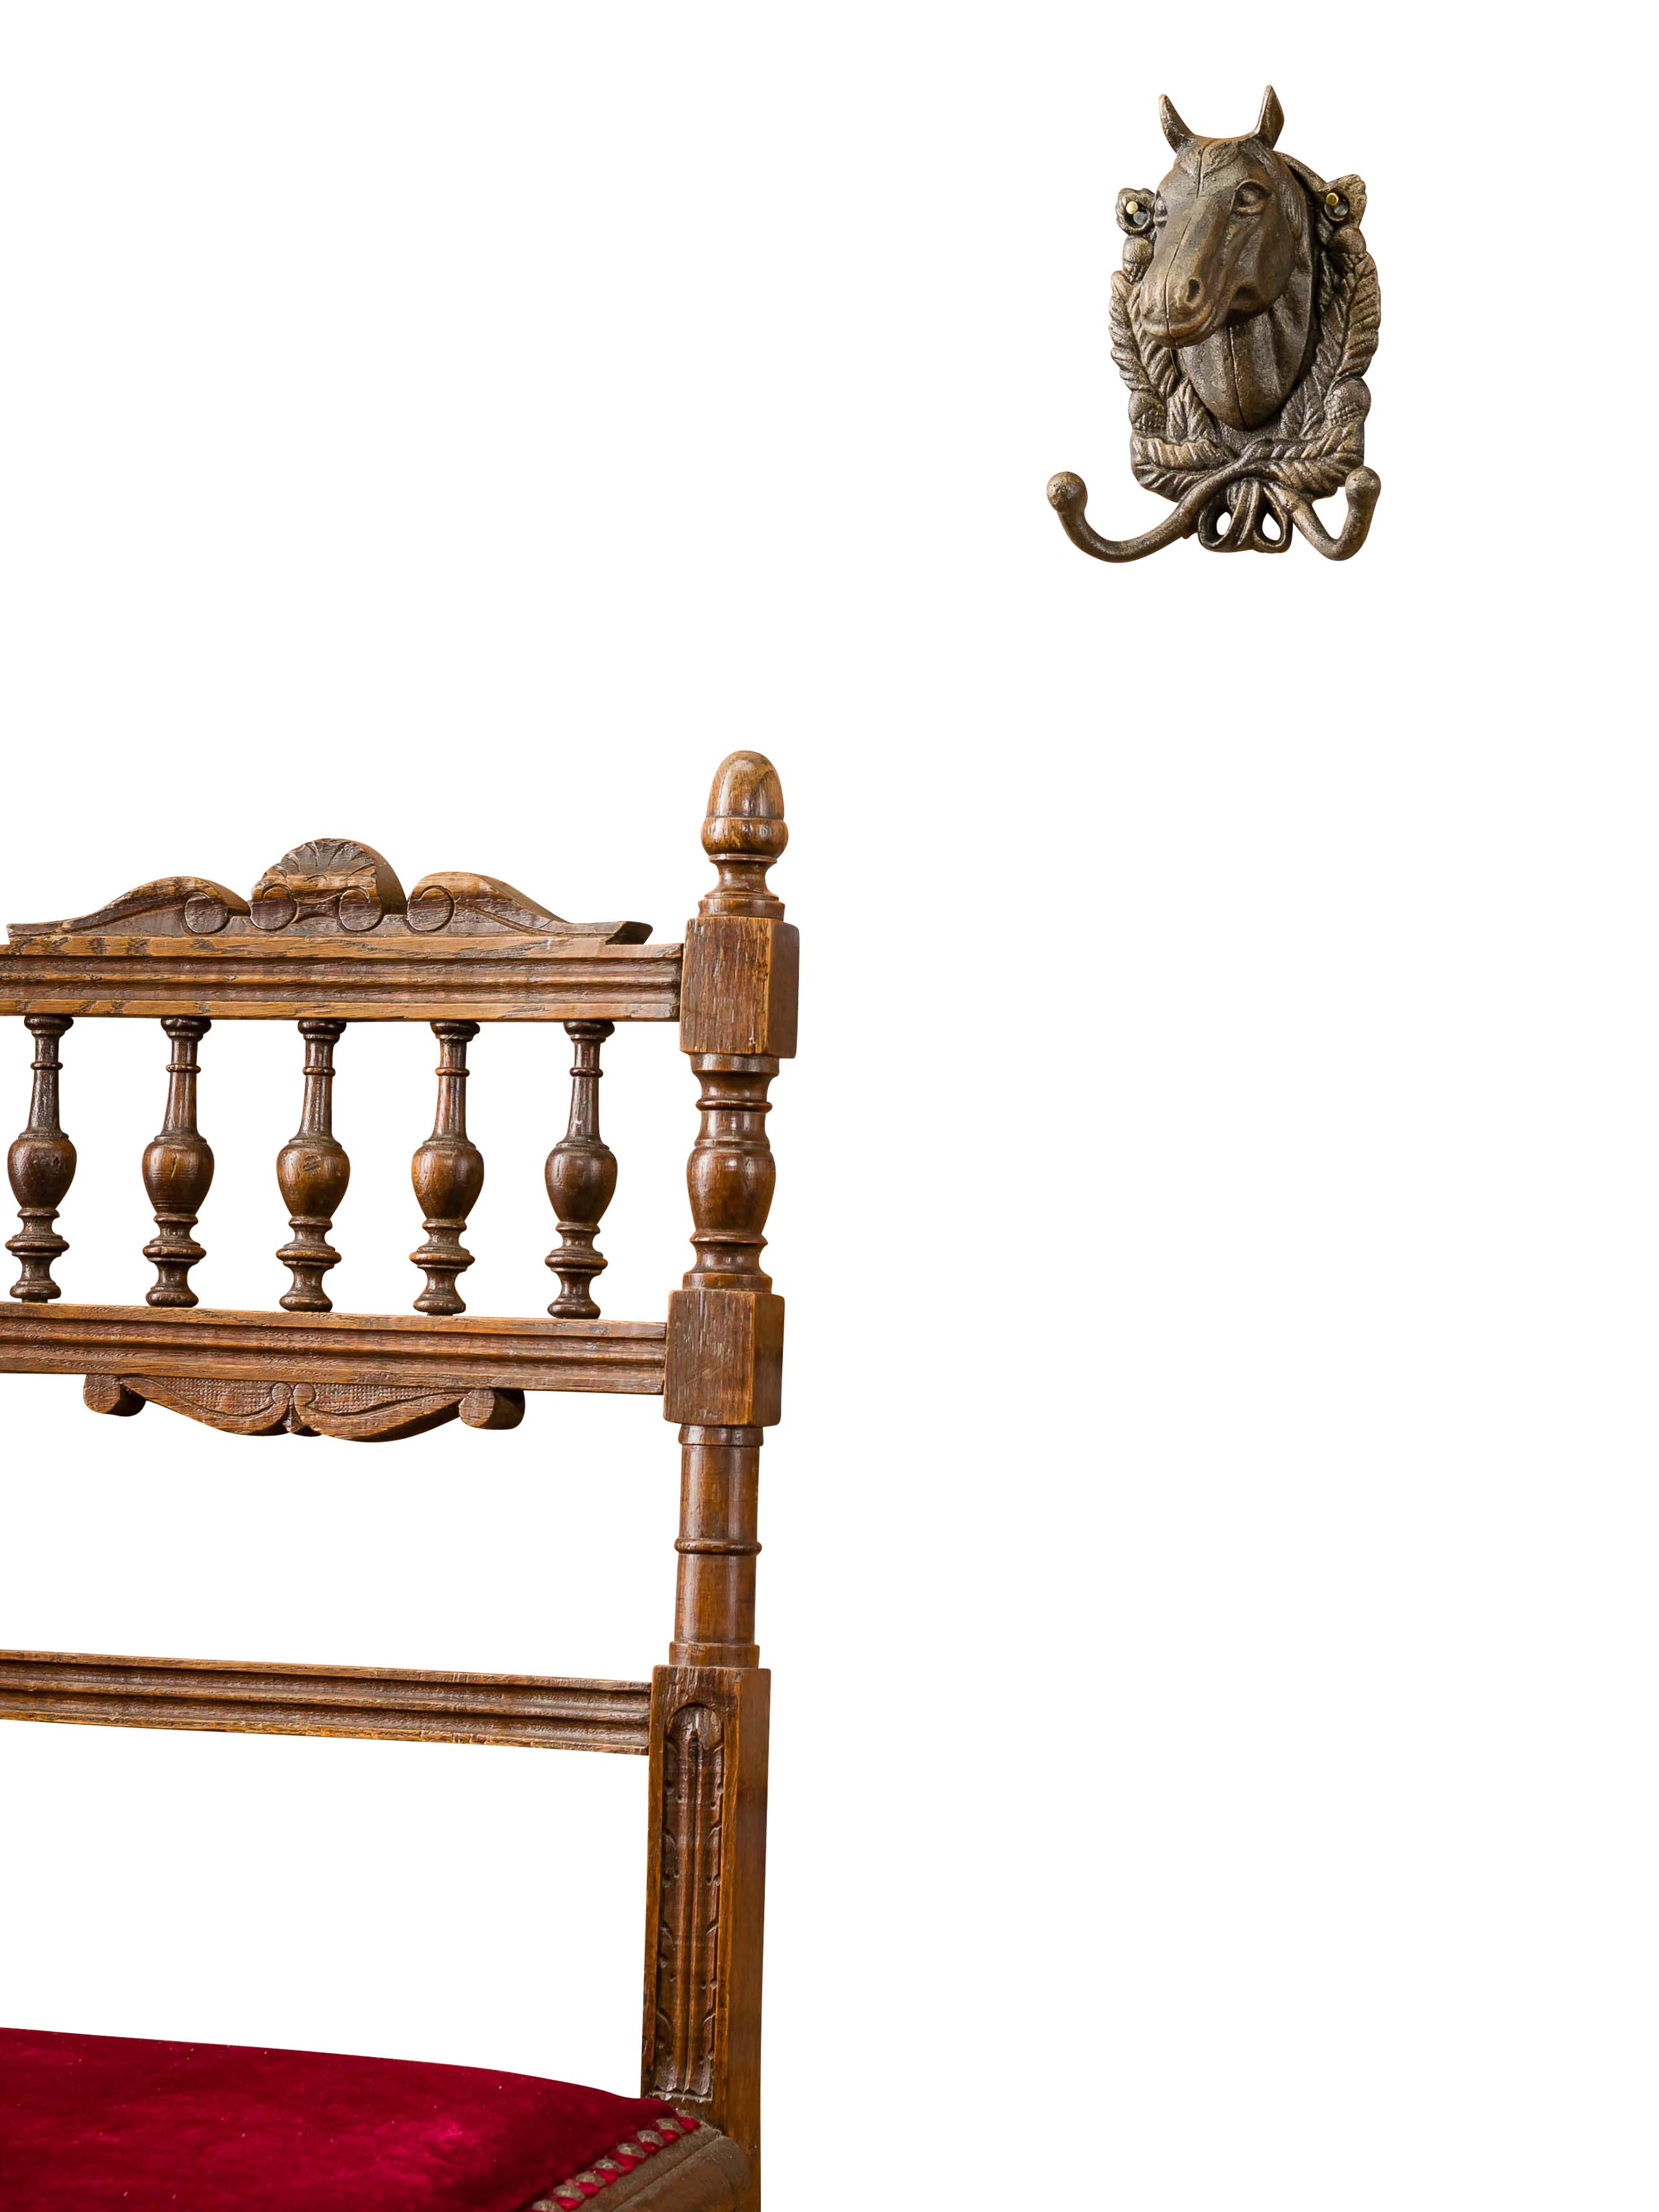 Wandgarderobe Garderobe Wandgarderobe Horse Wardrobe Towel Rack Iron Antique Style Brown Iron Horse